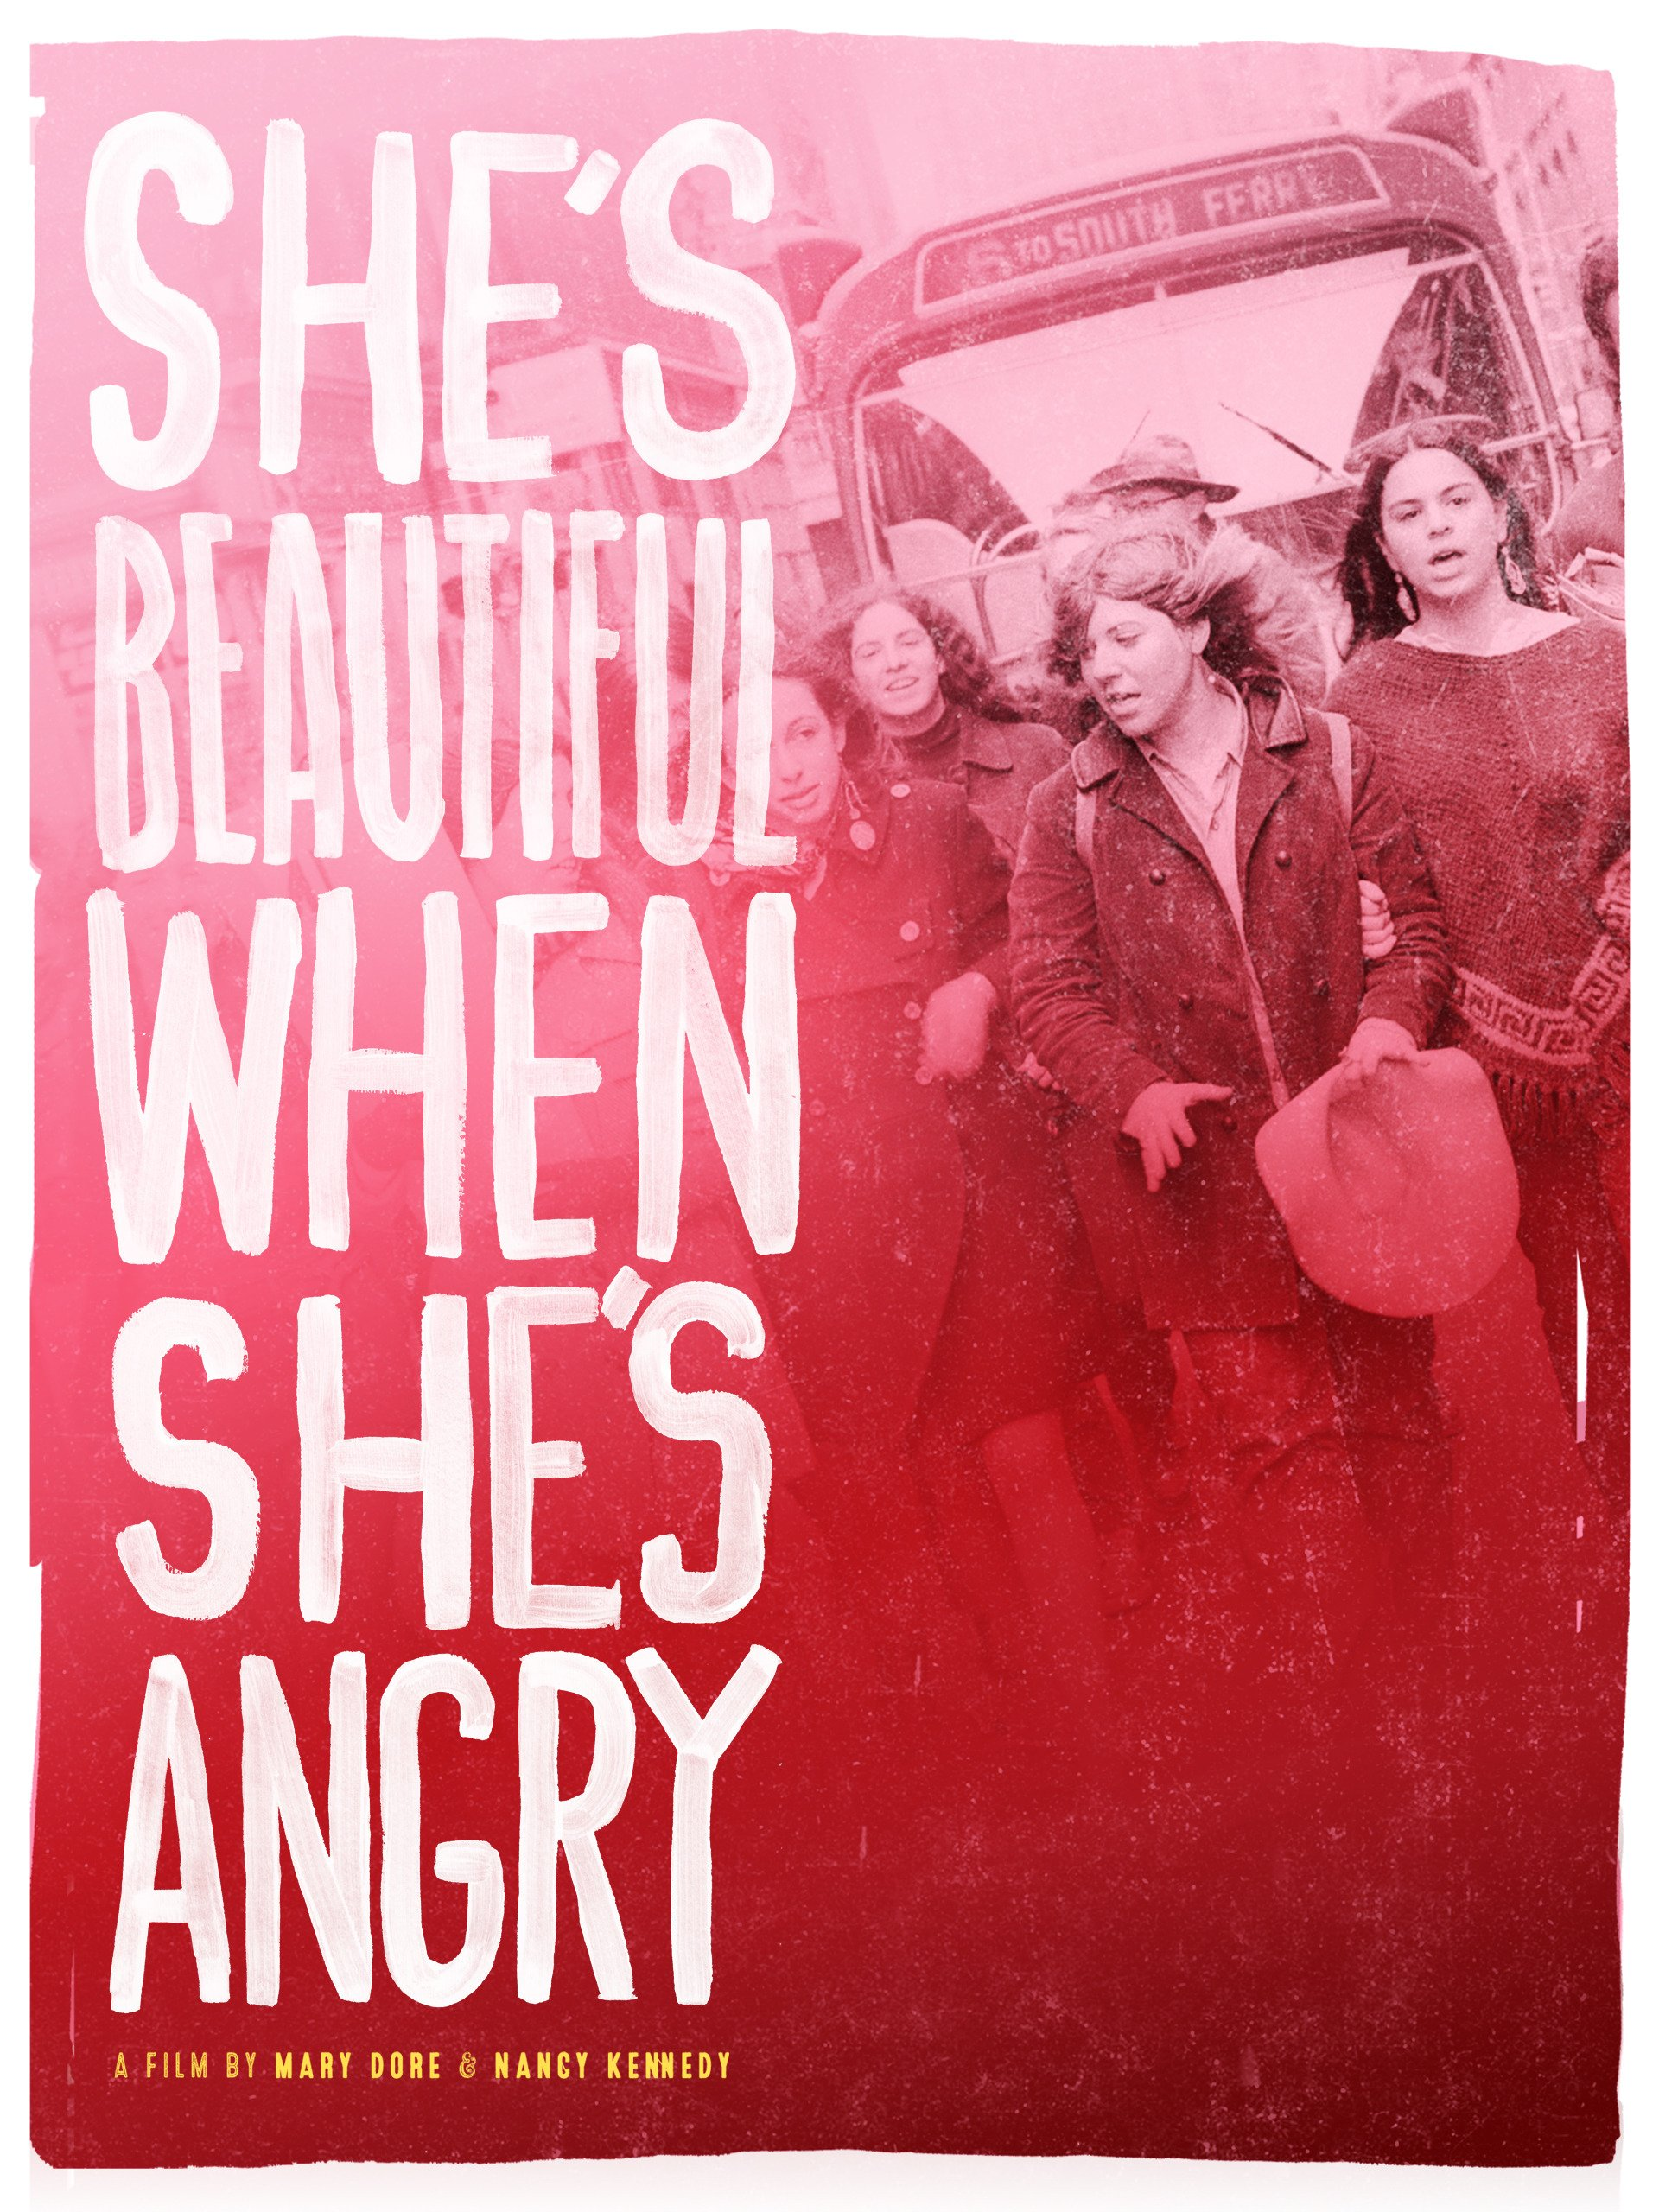 she's beautiful when she's angry film cover